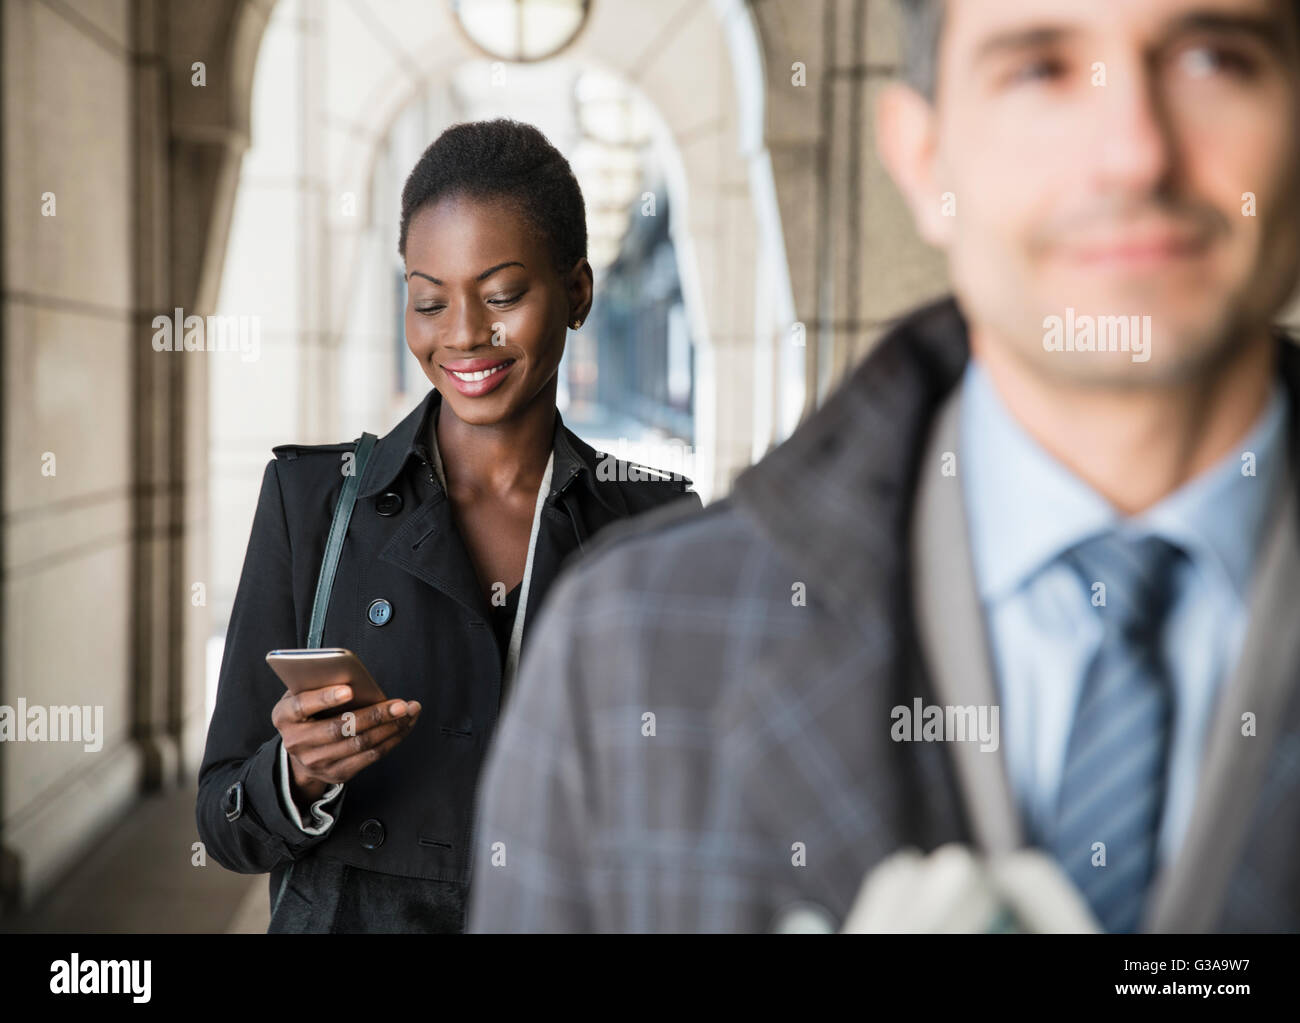 Corporate businesswoman texting with cell phone in cloister - Stock Image